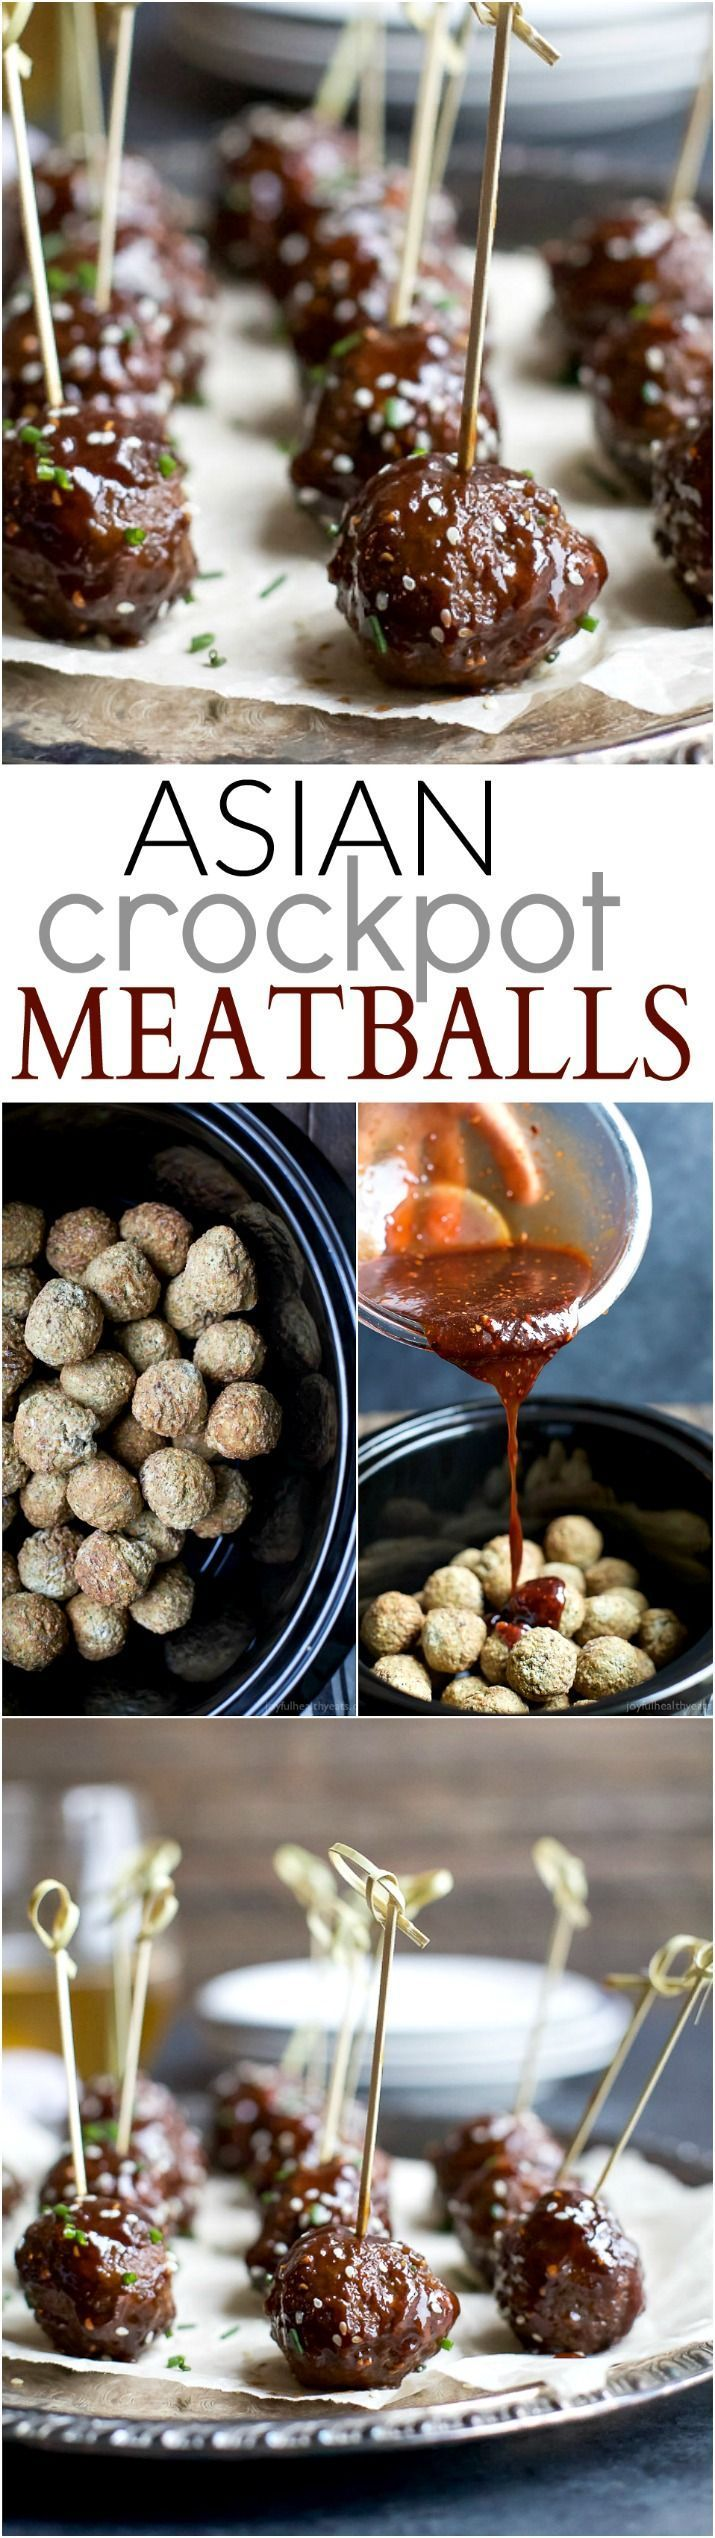 Asian Crockpot Meatballs covered in a sweet and spicy sauce you'll swoon over! This holiday appetizer recipe will be devoured in seconds!   joyfulhealthyeats.com